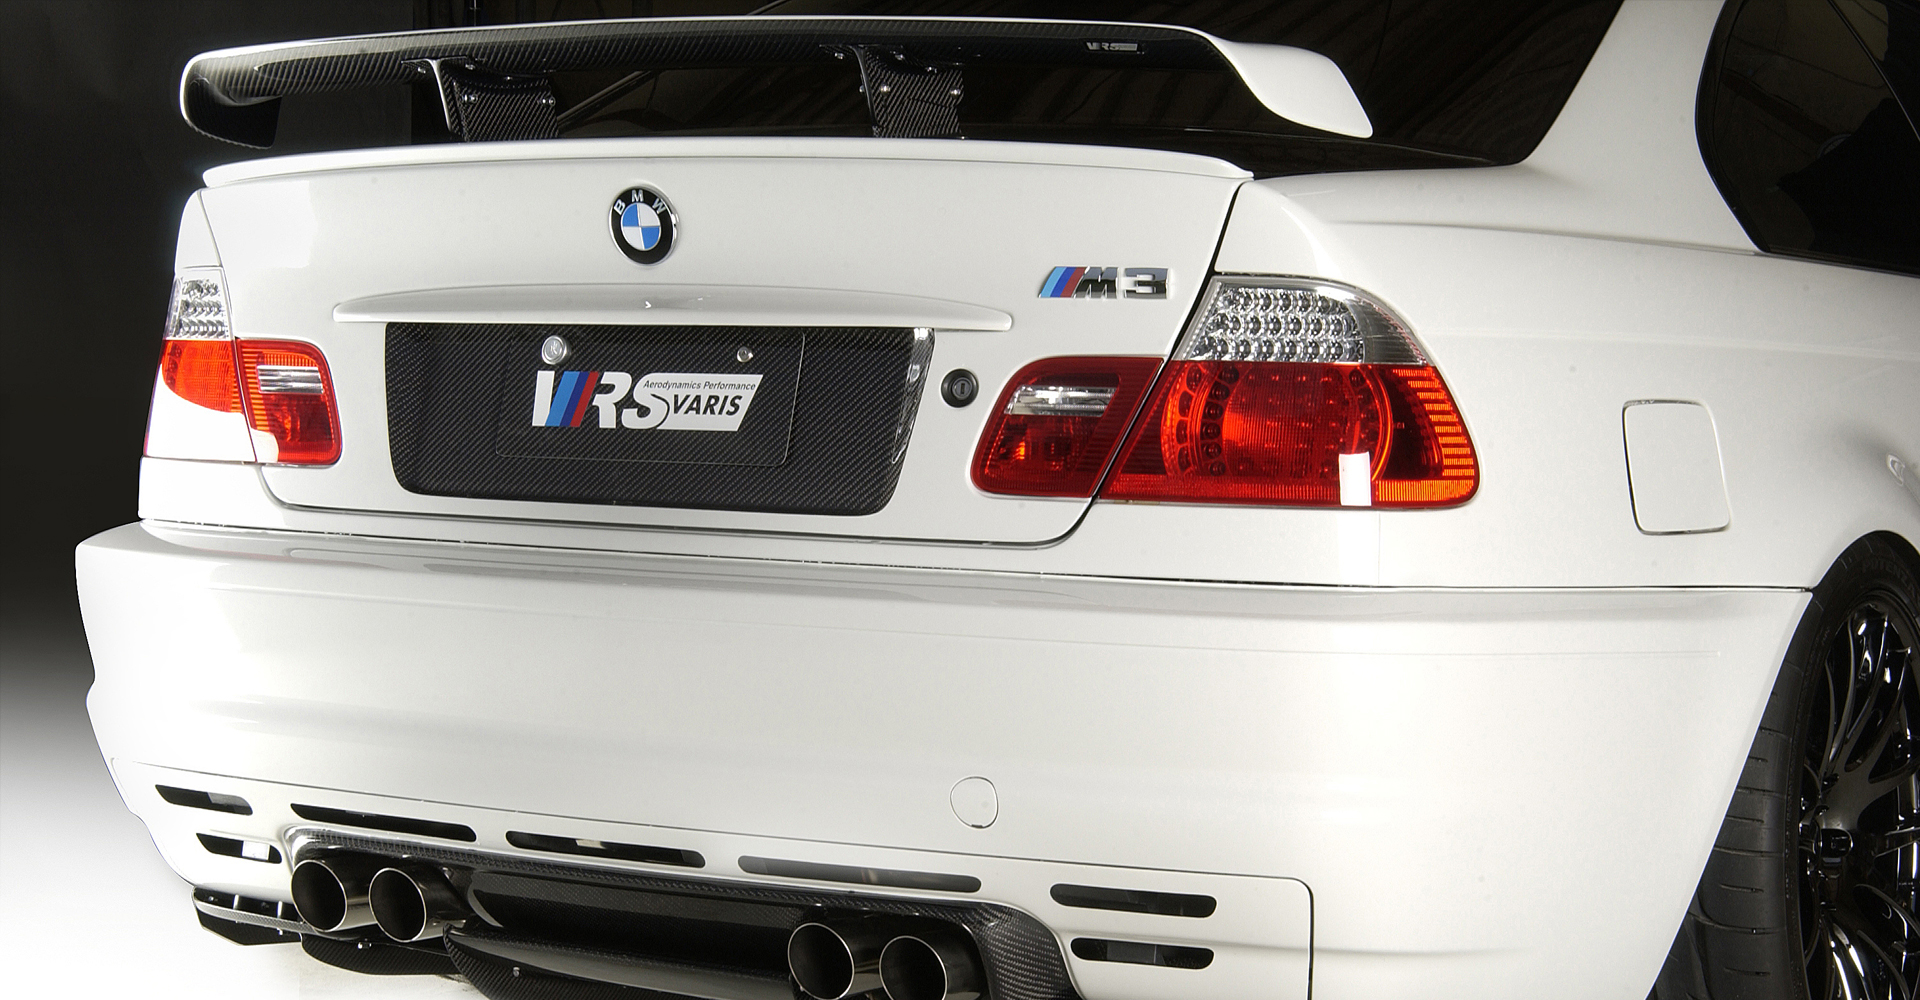 Vrs Bmw E46 M3 Street Version Light Weight Trunk Hood